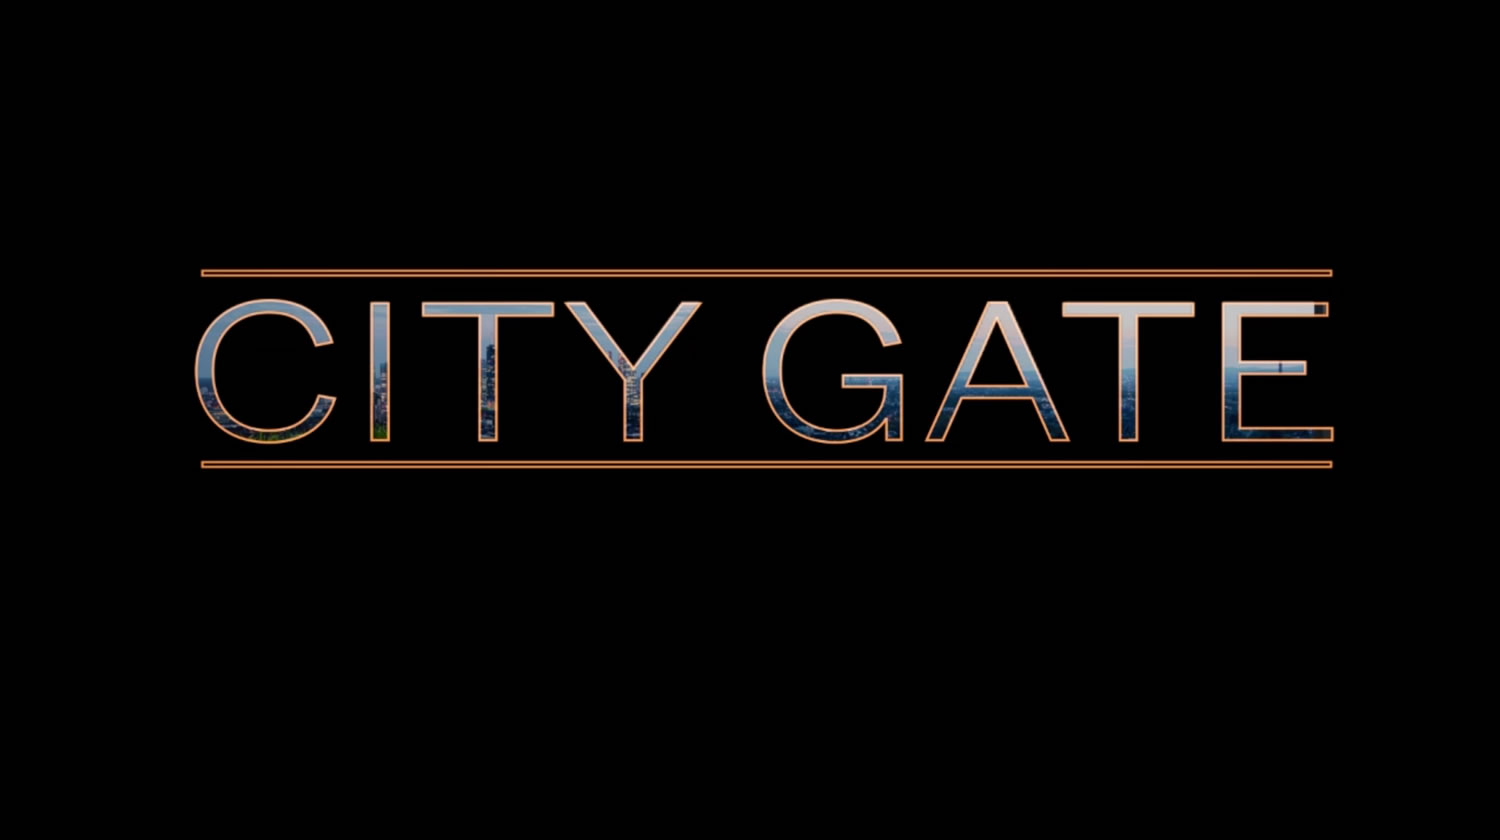 http://citygate.cw-it.de/CityGate_deutsch_2017_720p_LQ